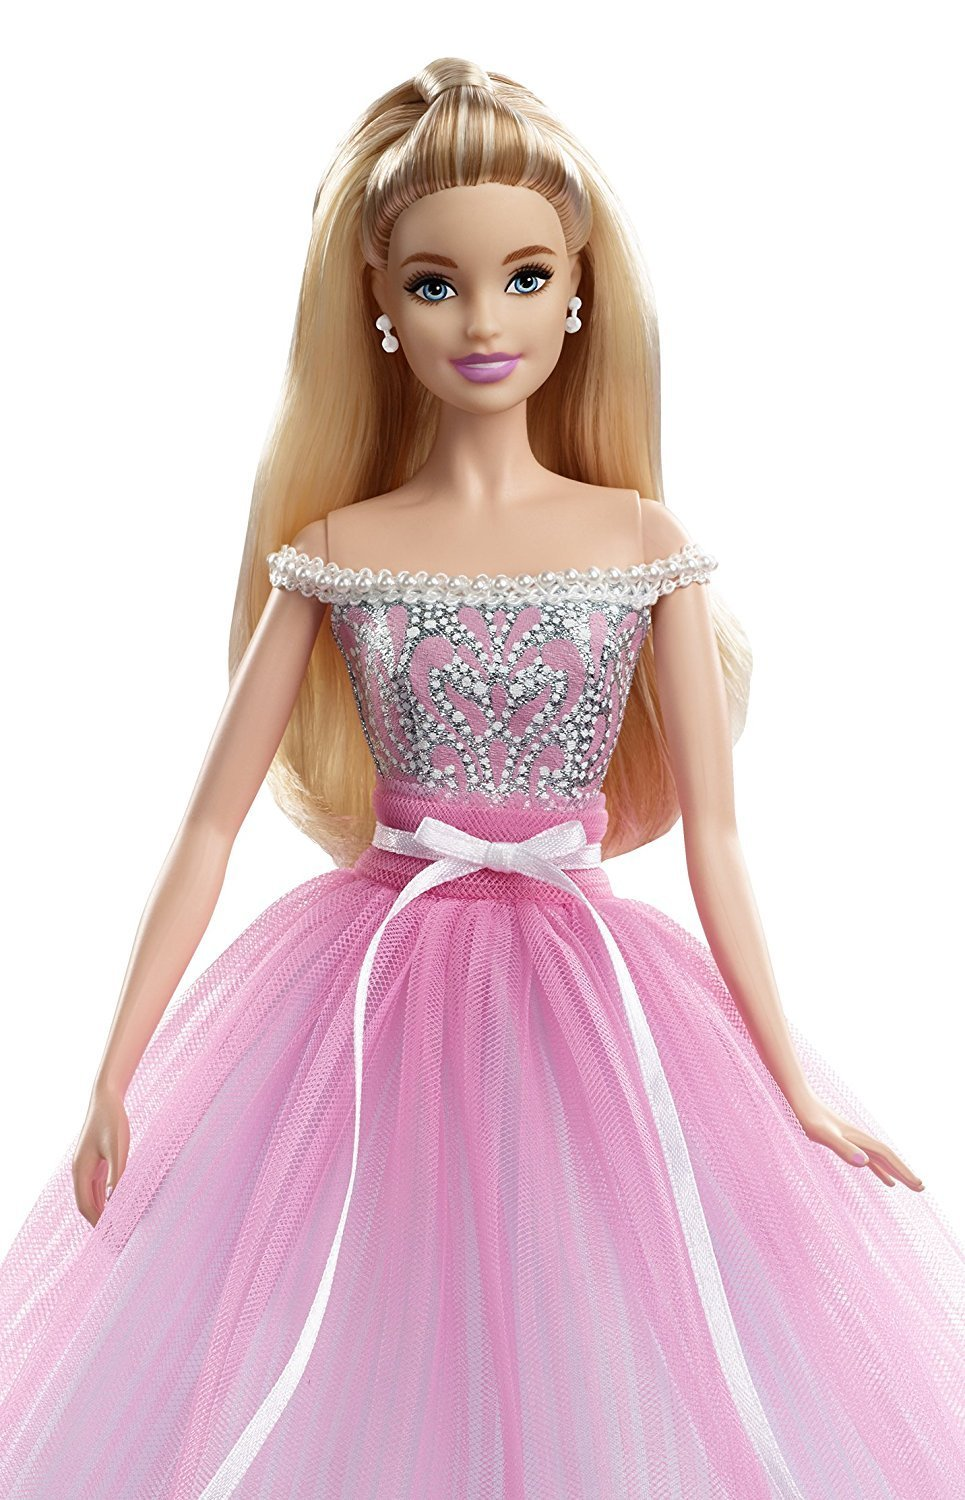 Barbie girls collector birthday wishes doll barbie collectibles - Barbie barbie barbie barbie barbie ...